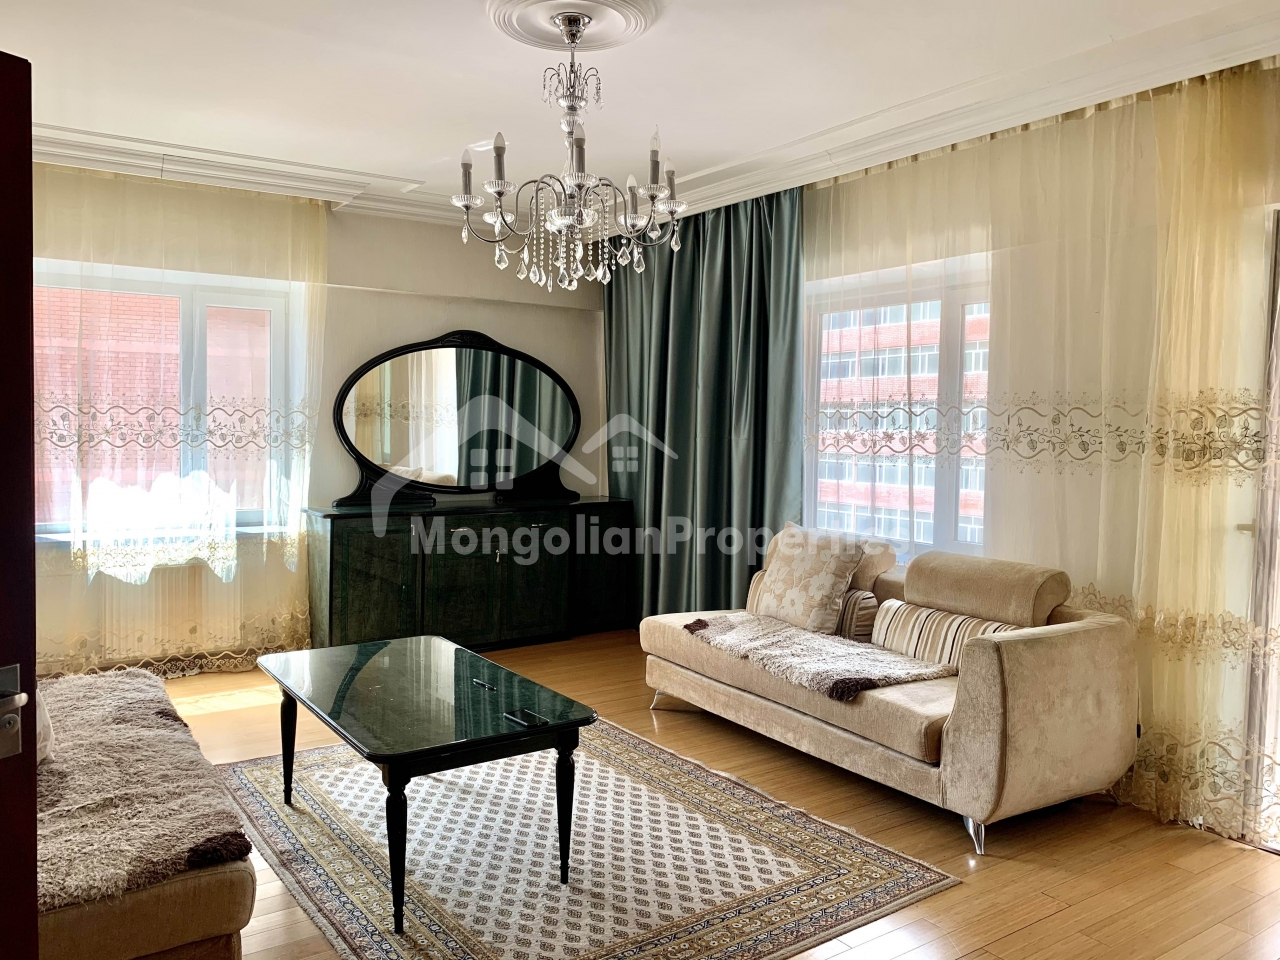 For rent: Comfortable, Fully furnished 5 room apartment at Rapid town